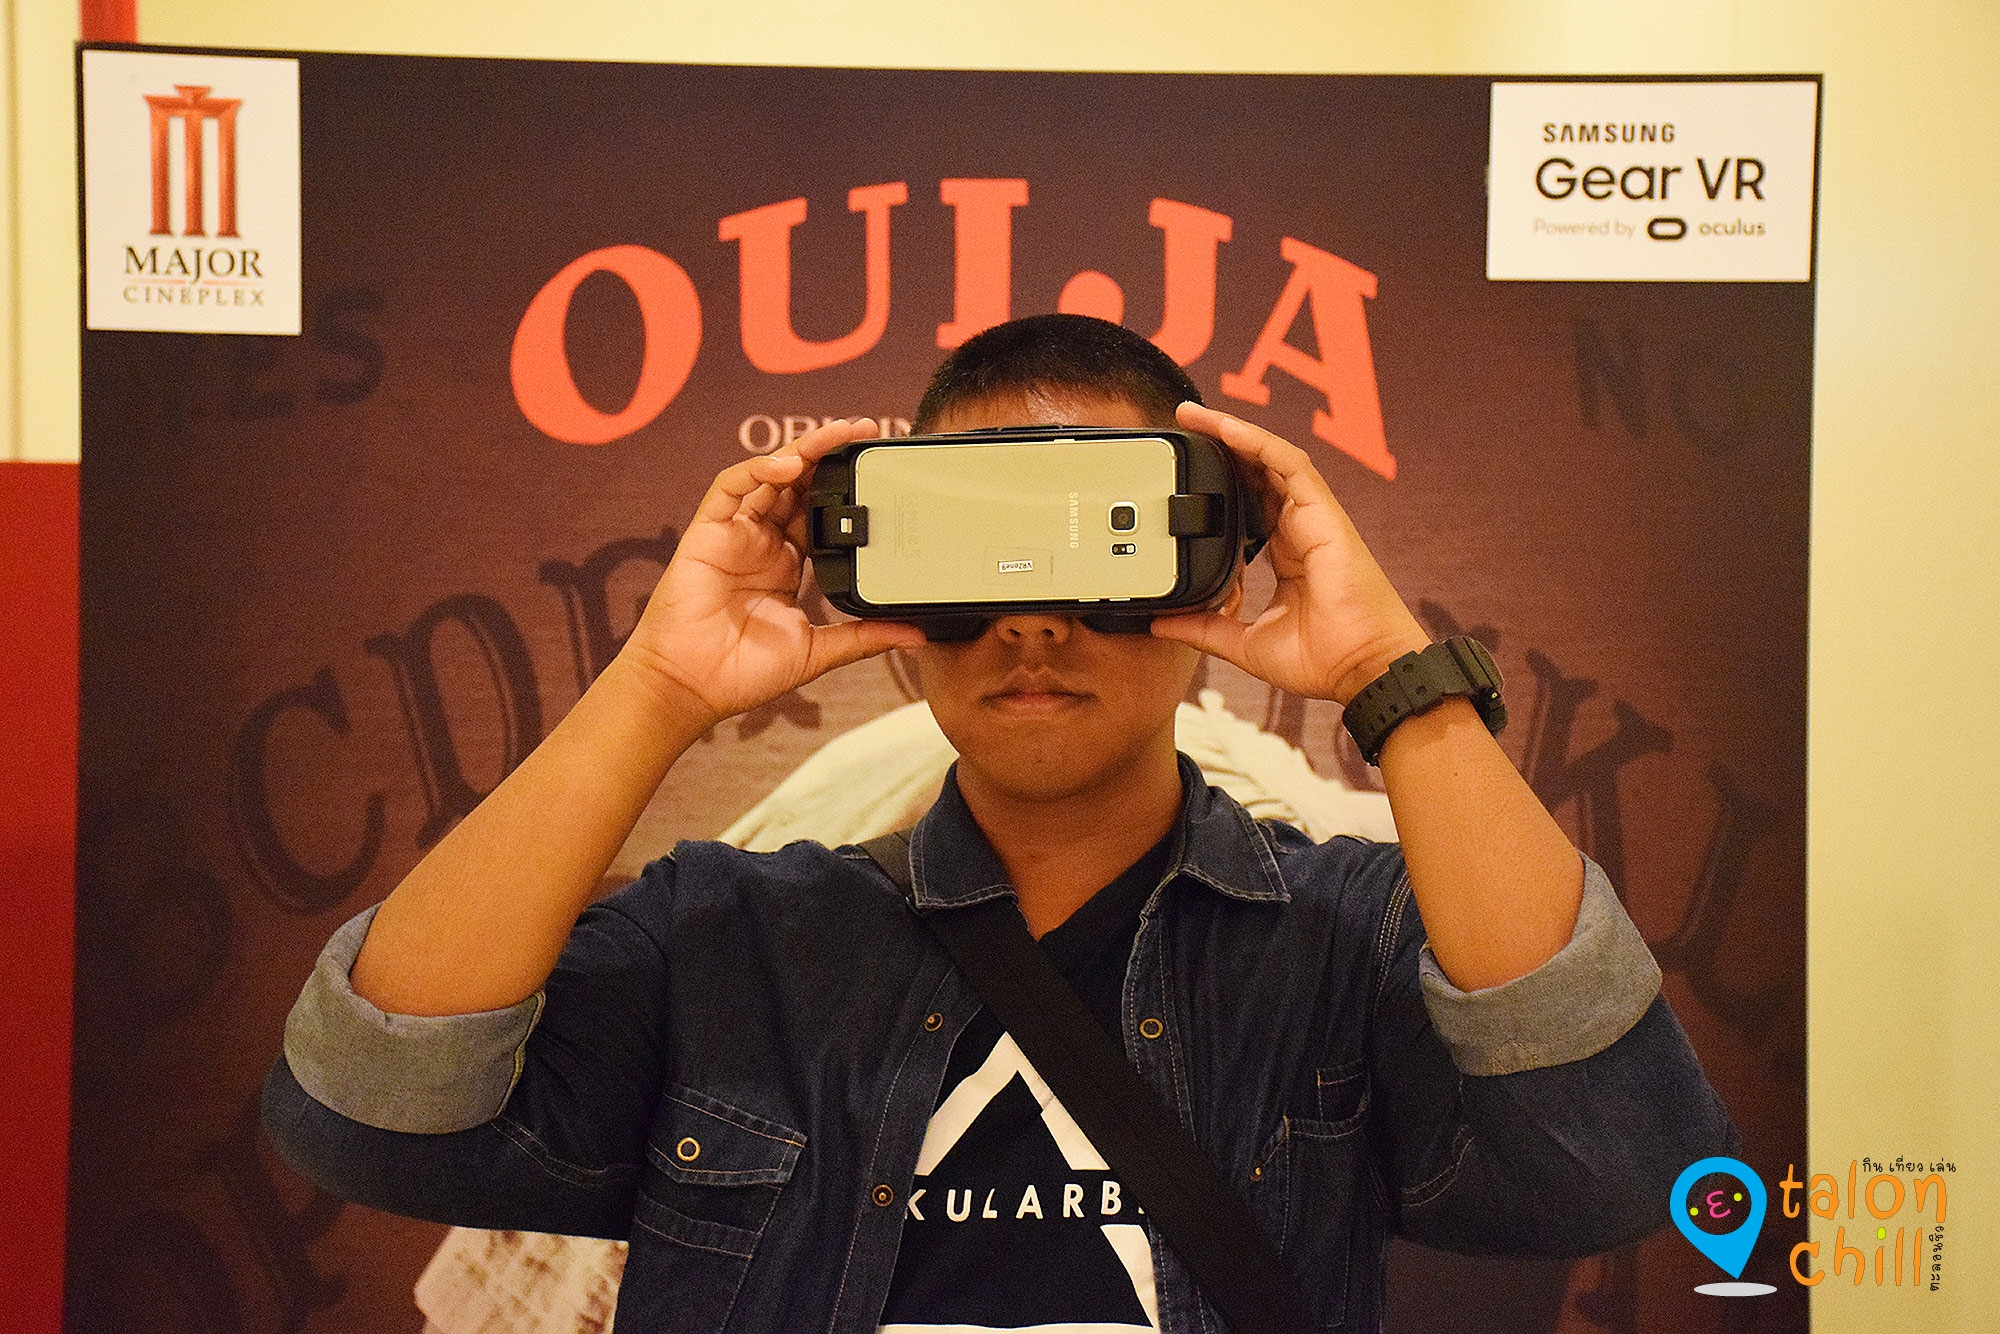 review samsung gear vr by oculus ouija 2 360 vr 21